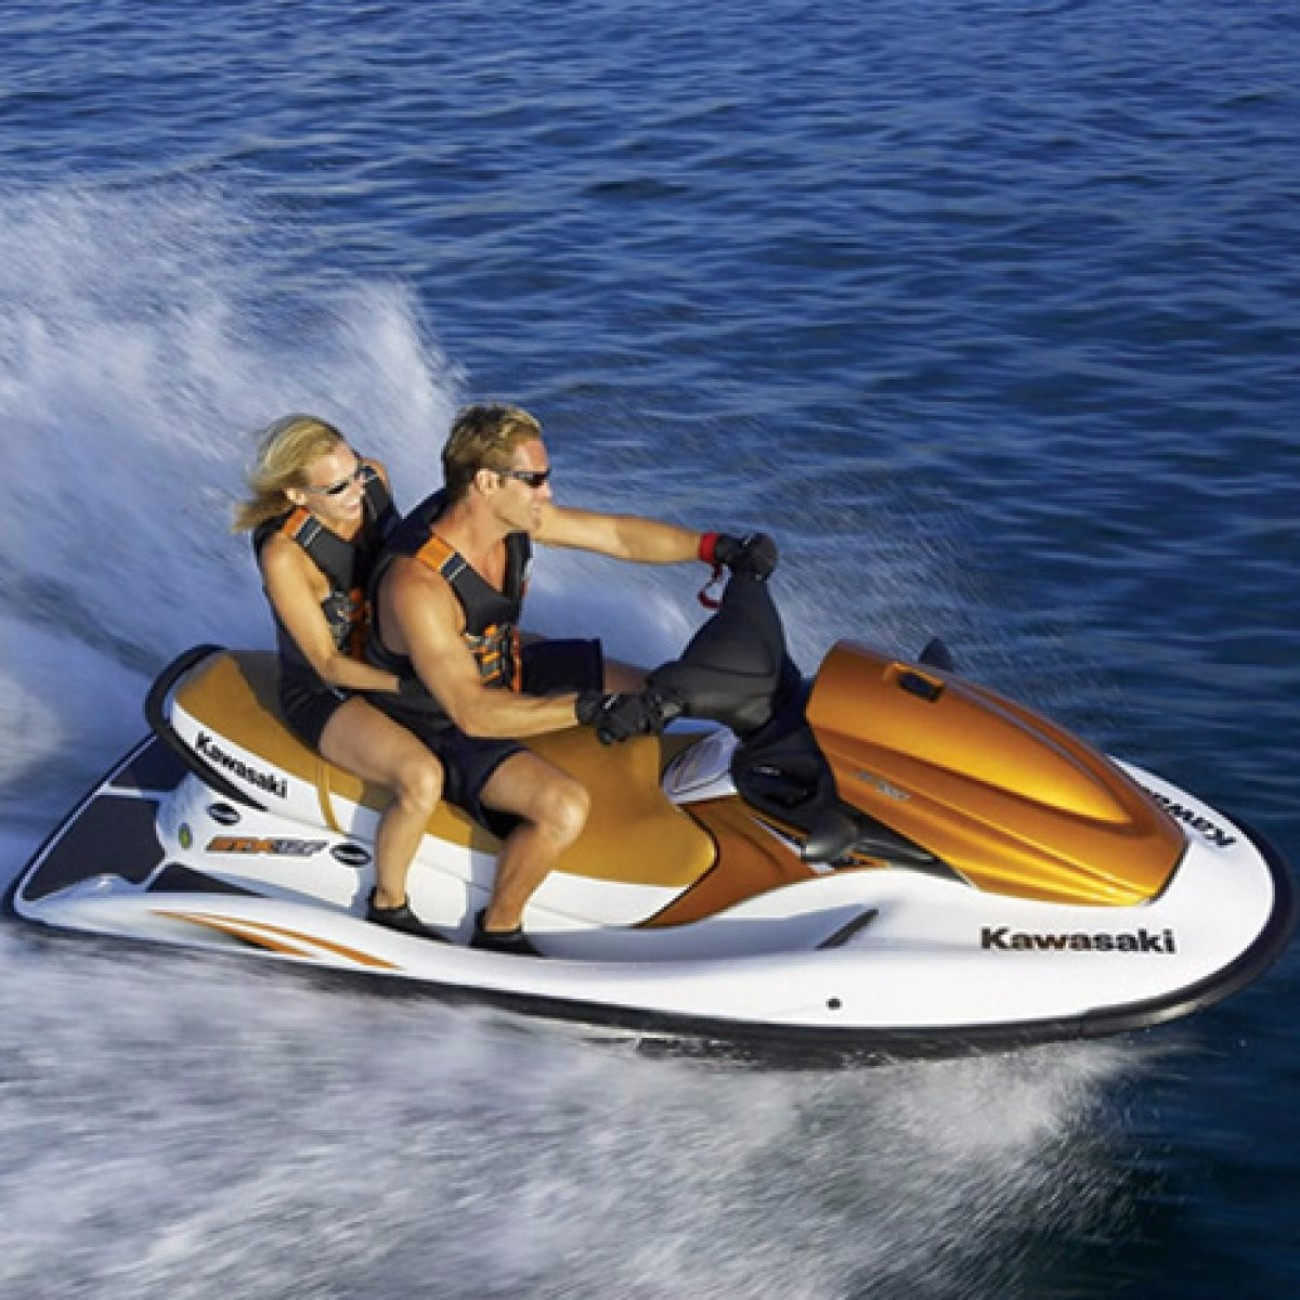 Watergames Monopoli - Water Sports and Rental